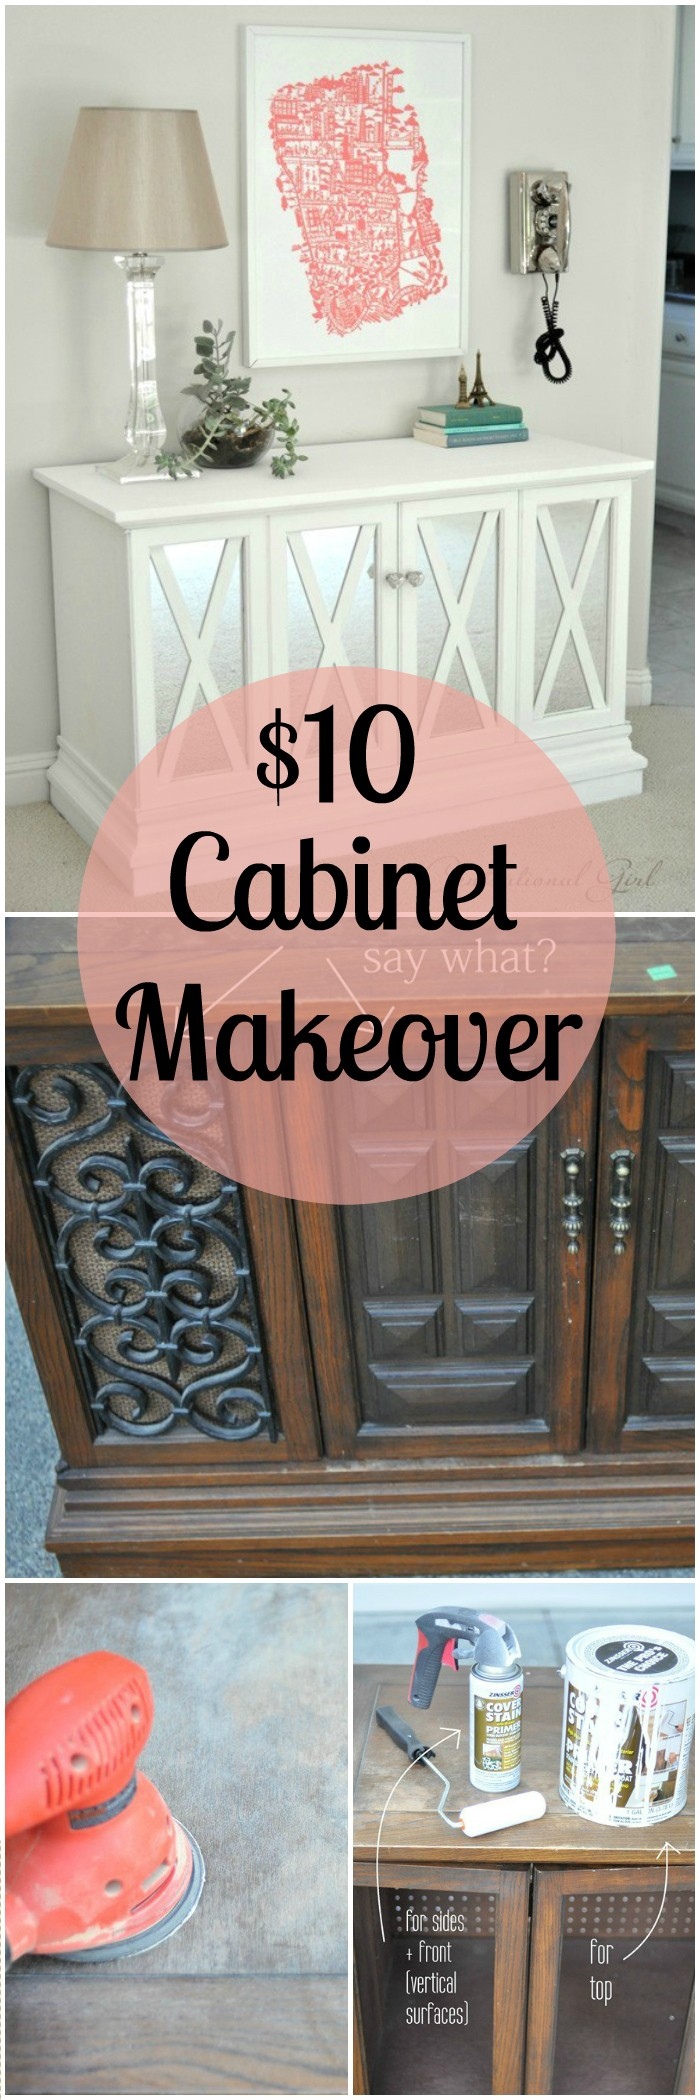 DIY Projects For The Home Decorations $10 Cabinet Makeover